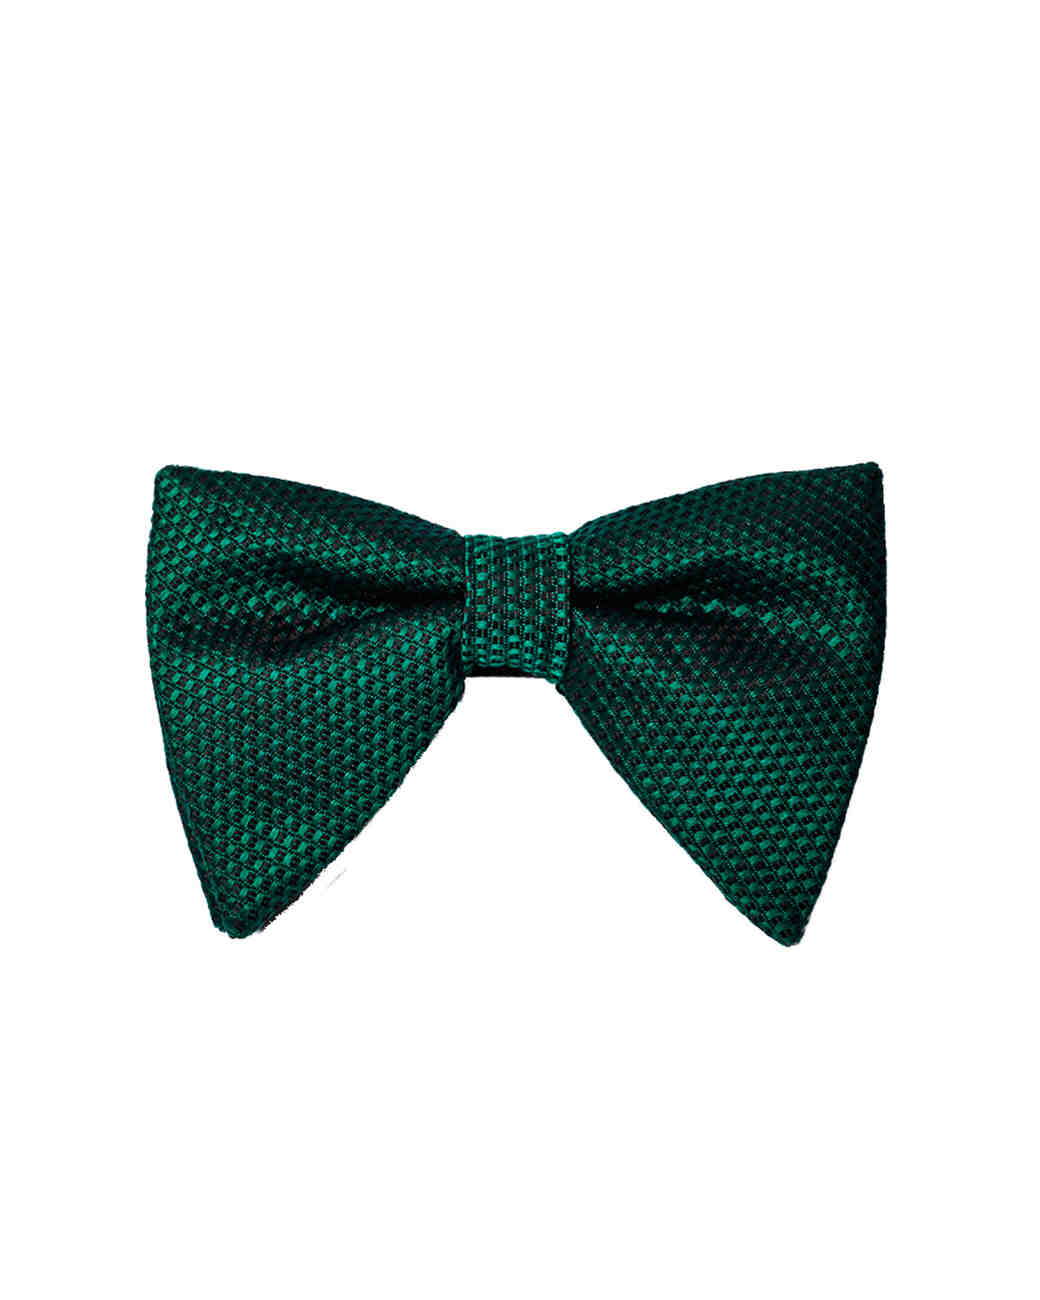 bow-ties-thetiebar-aristocrat-hunter-green-0814.jpg